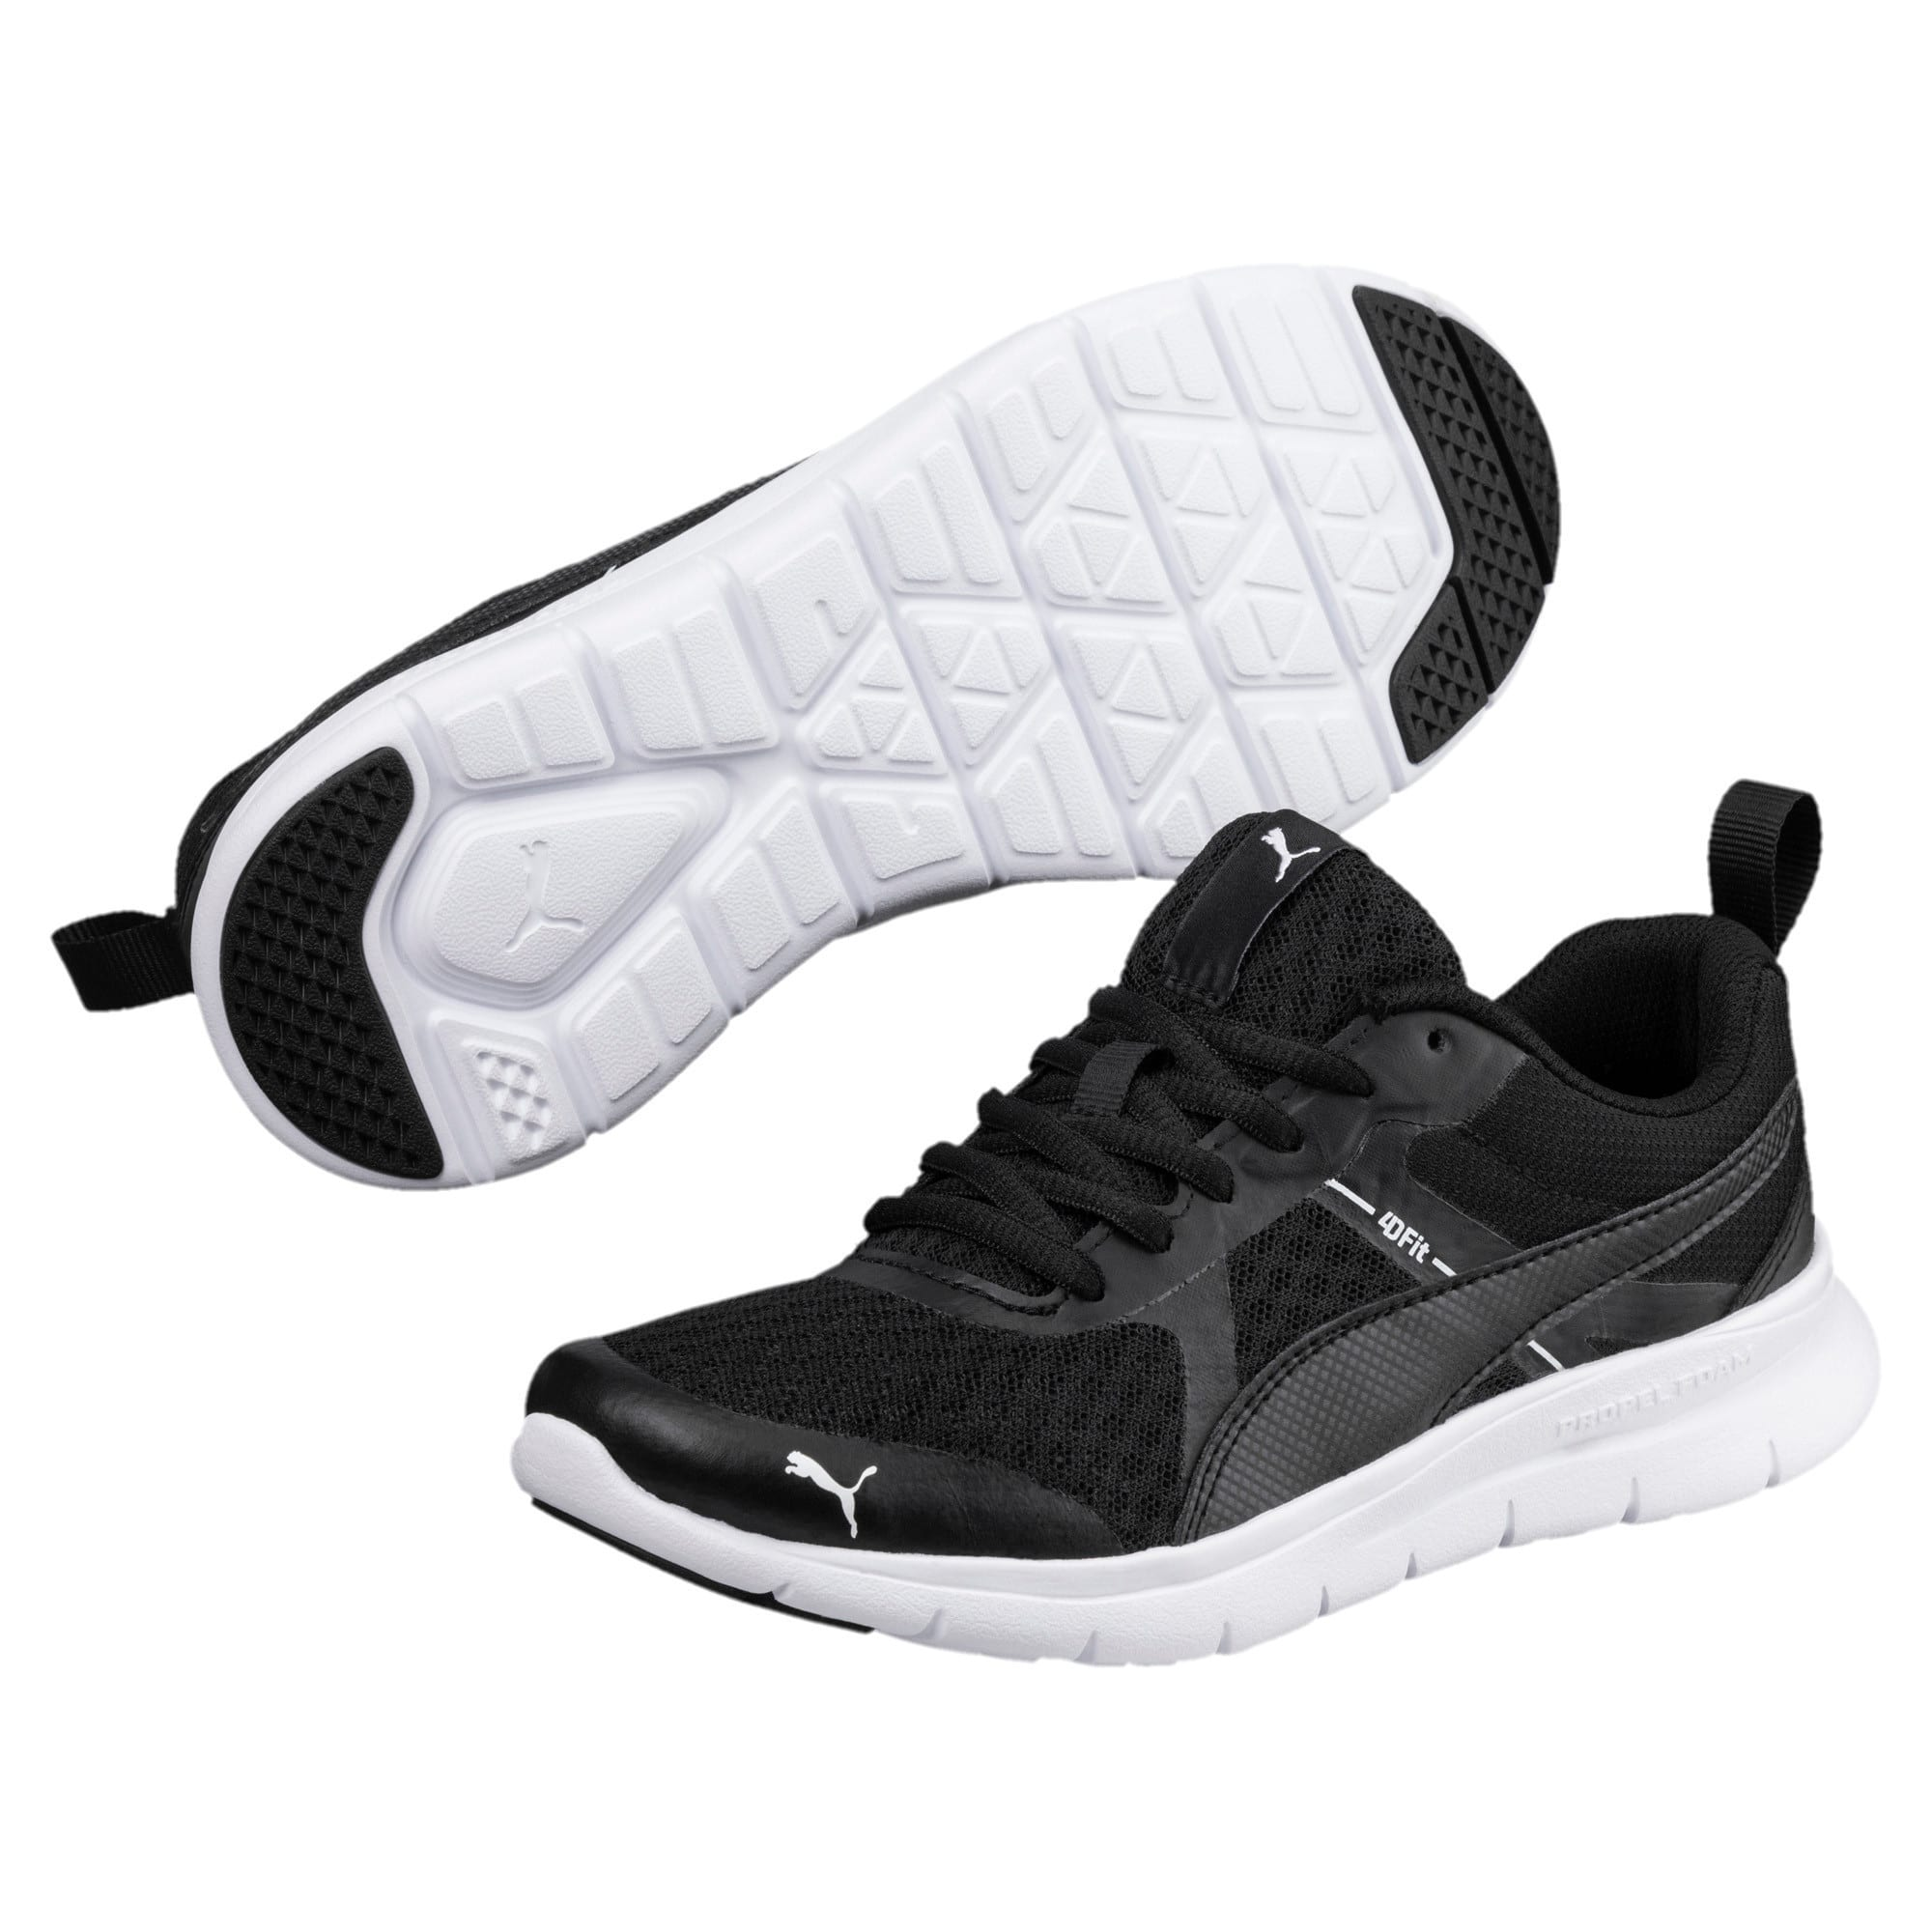 Thumbnail 2 of Essential Flex Youth Trainers, Puma Black-Puma Black, medium-IND